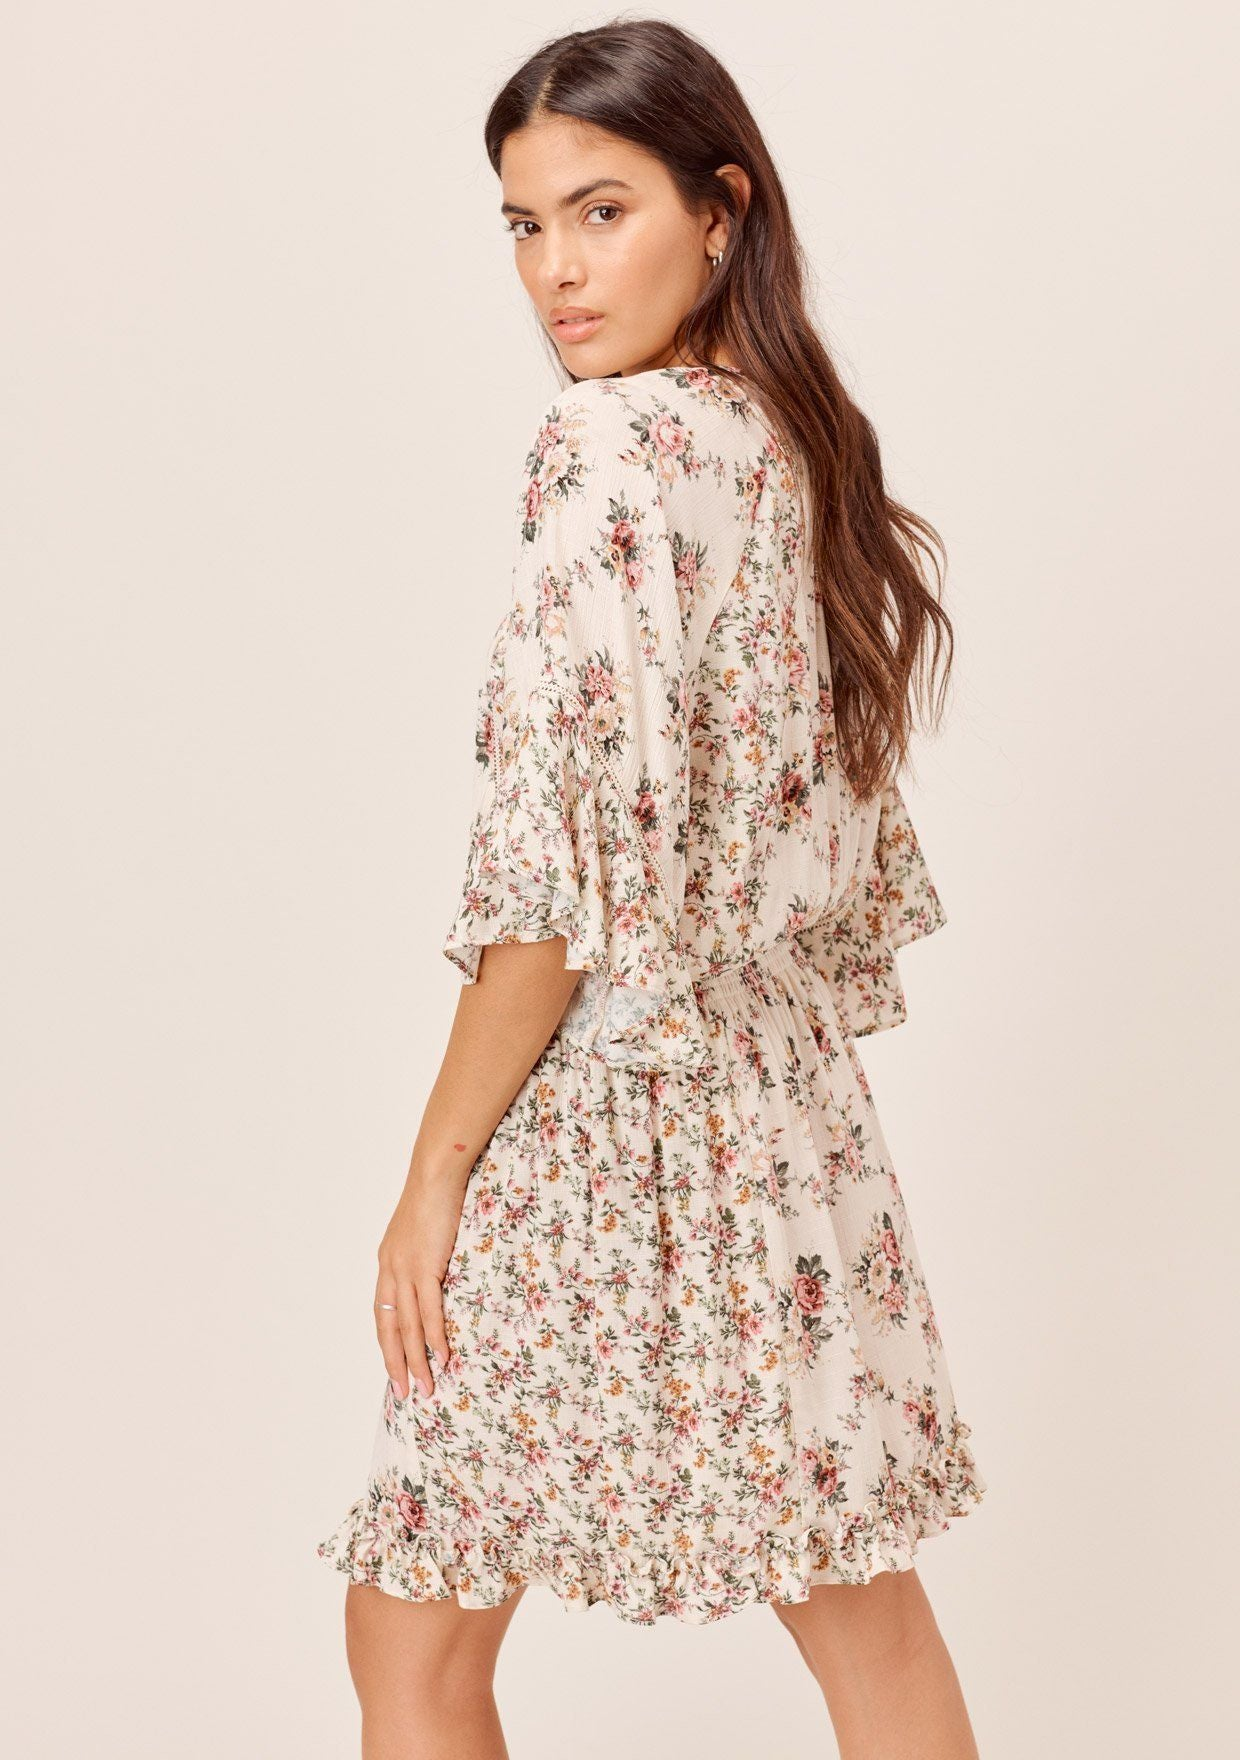 [Color: Natural/Rose] Lovestitch ruffle sleeve mini dress with rose print vintage floral and flattering silhouette